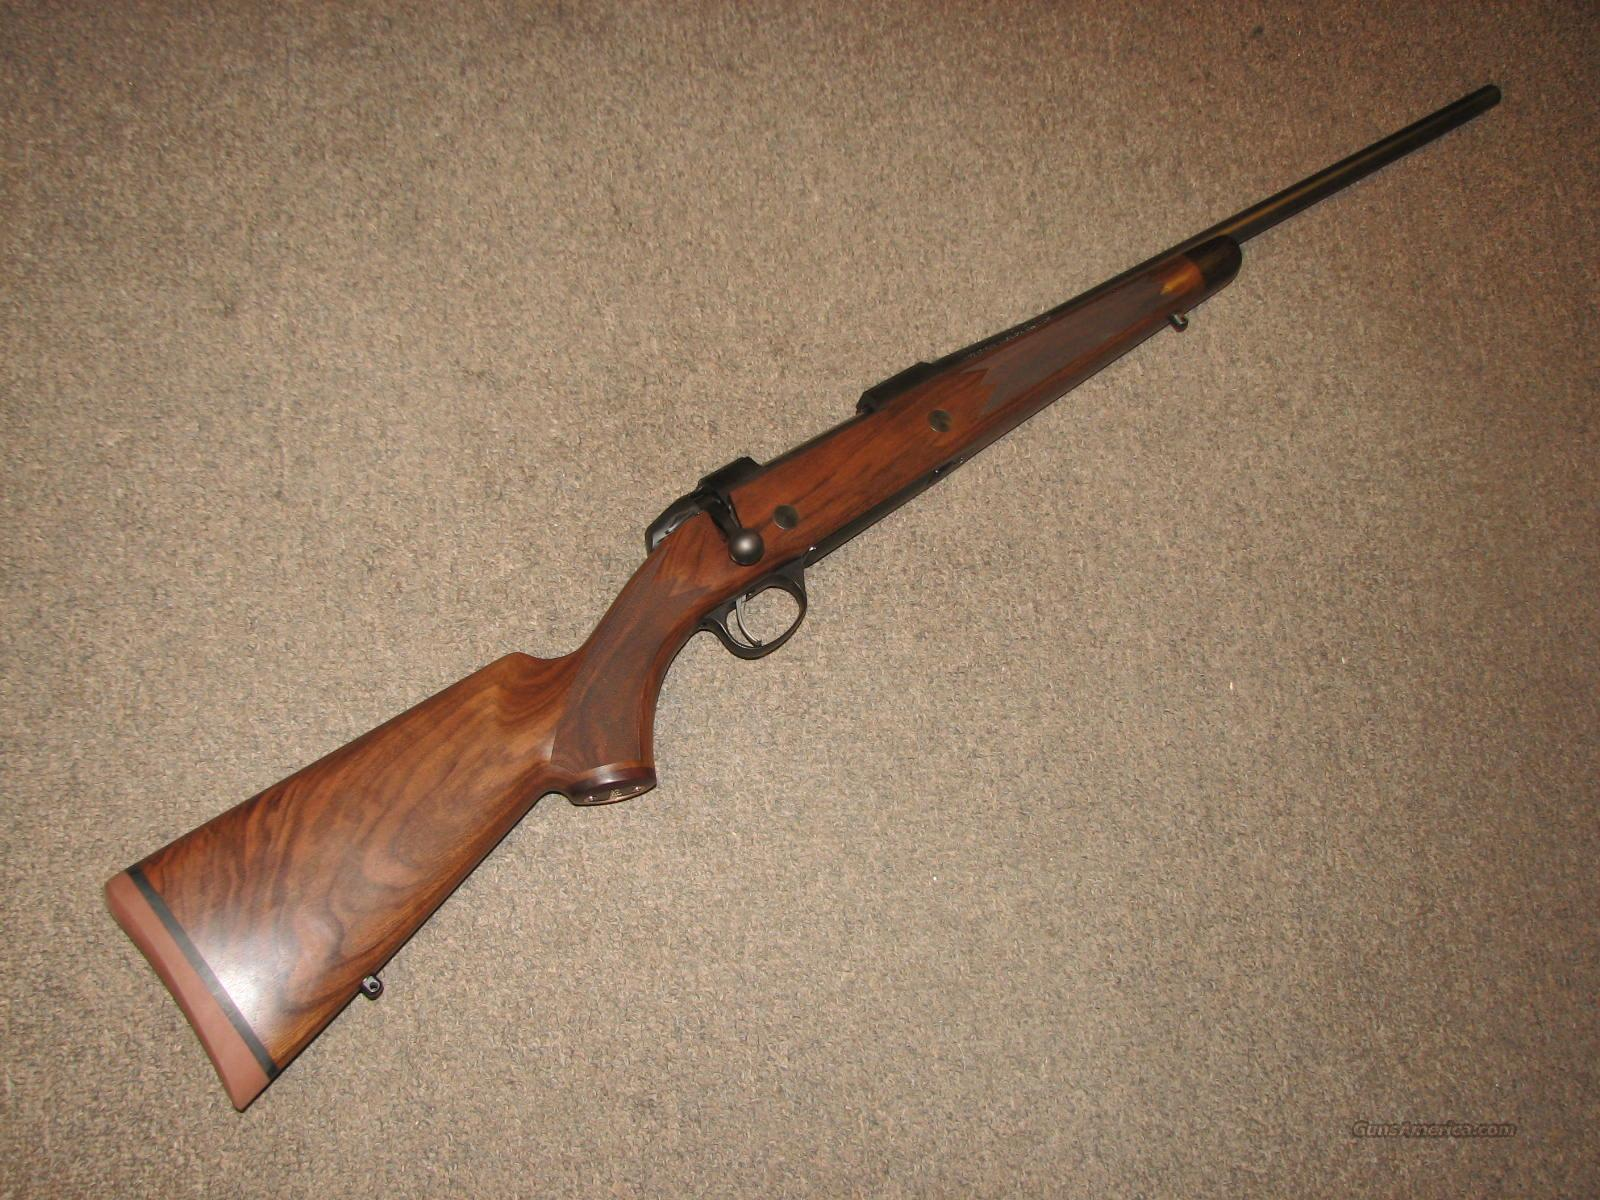 SAKO 85 CLASSIC .270 WIN - NEW!  Guns > Rifles > Sako Rifles > M85 Series